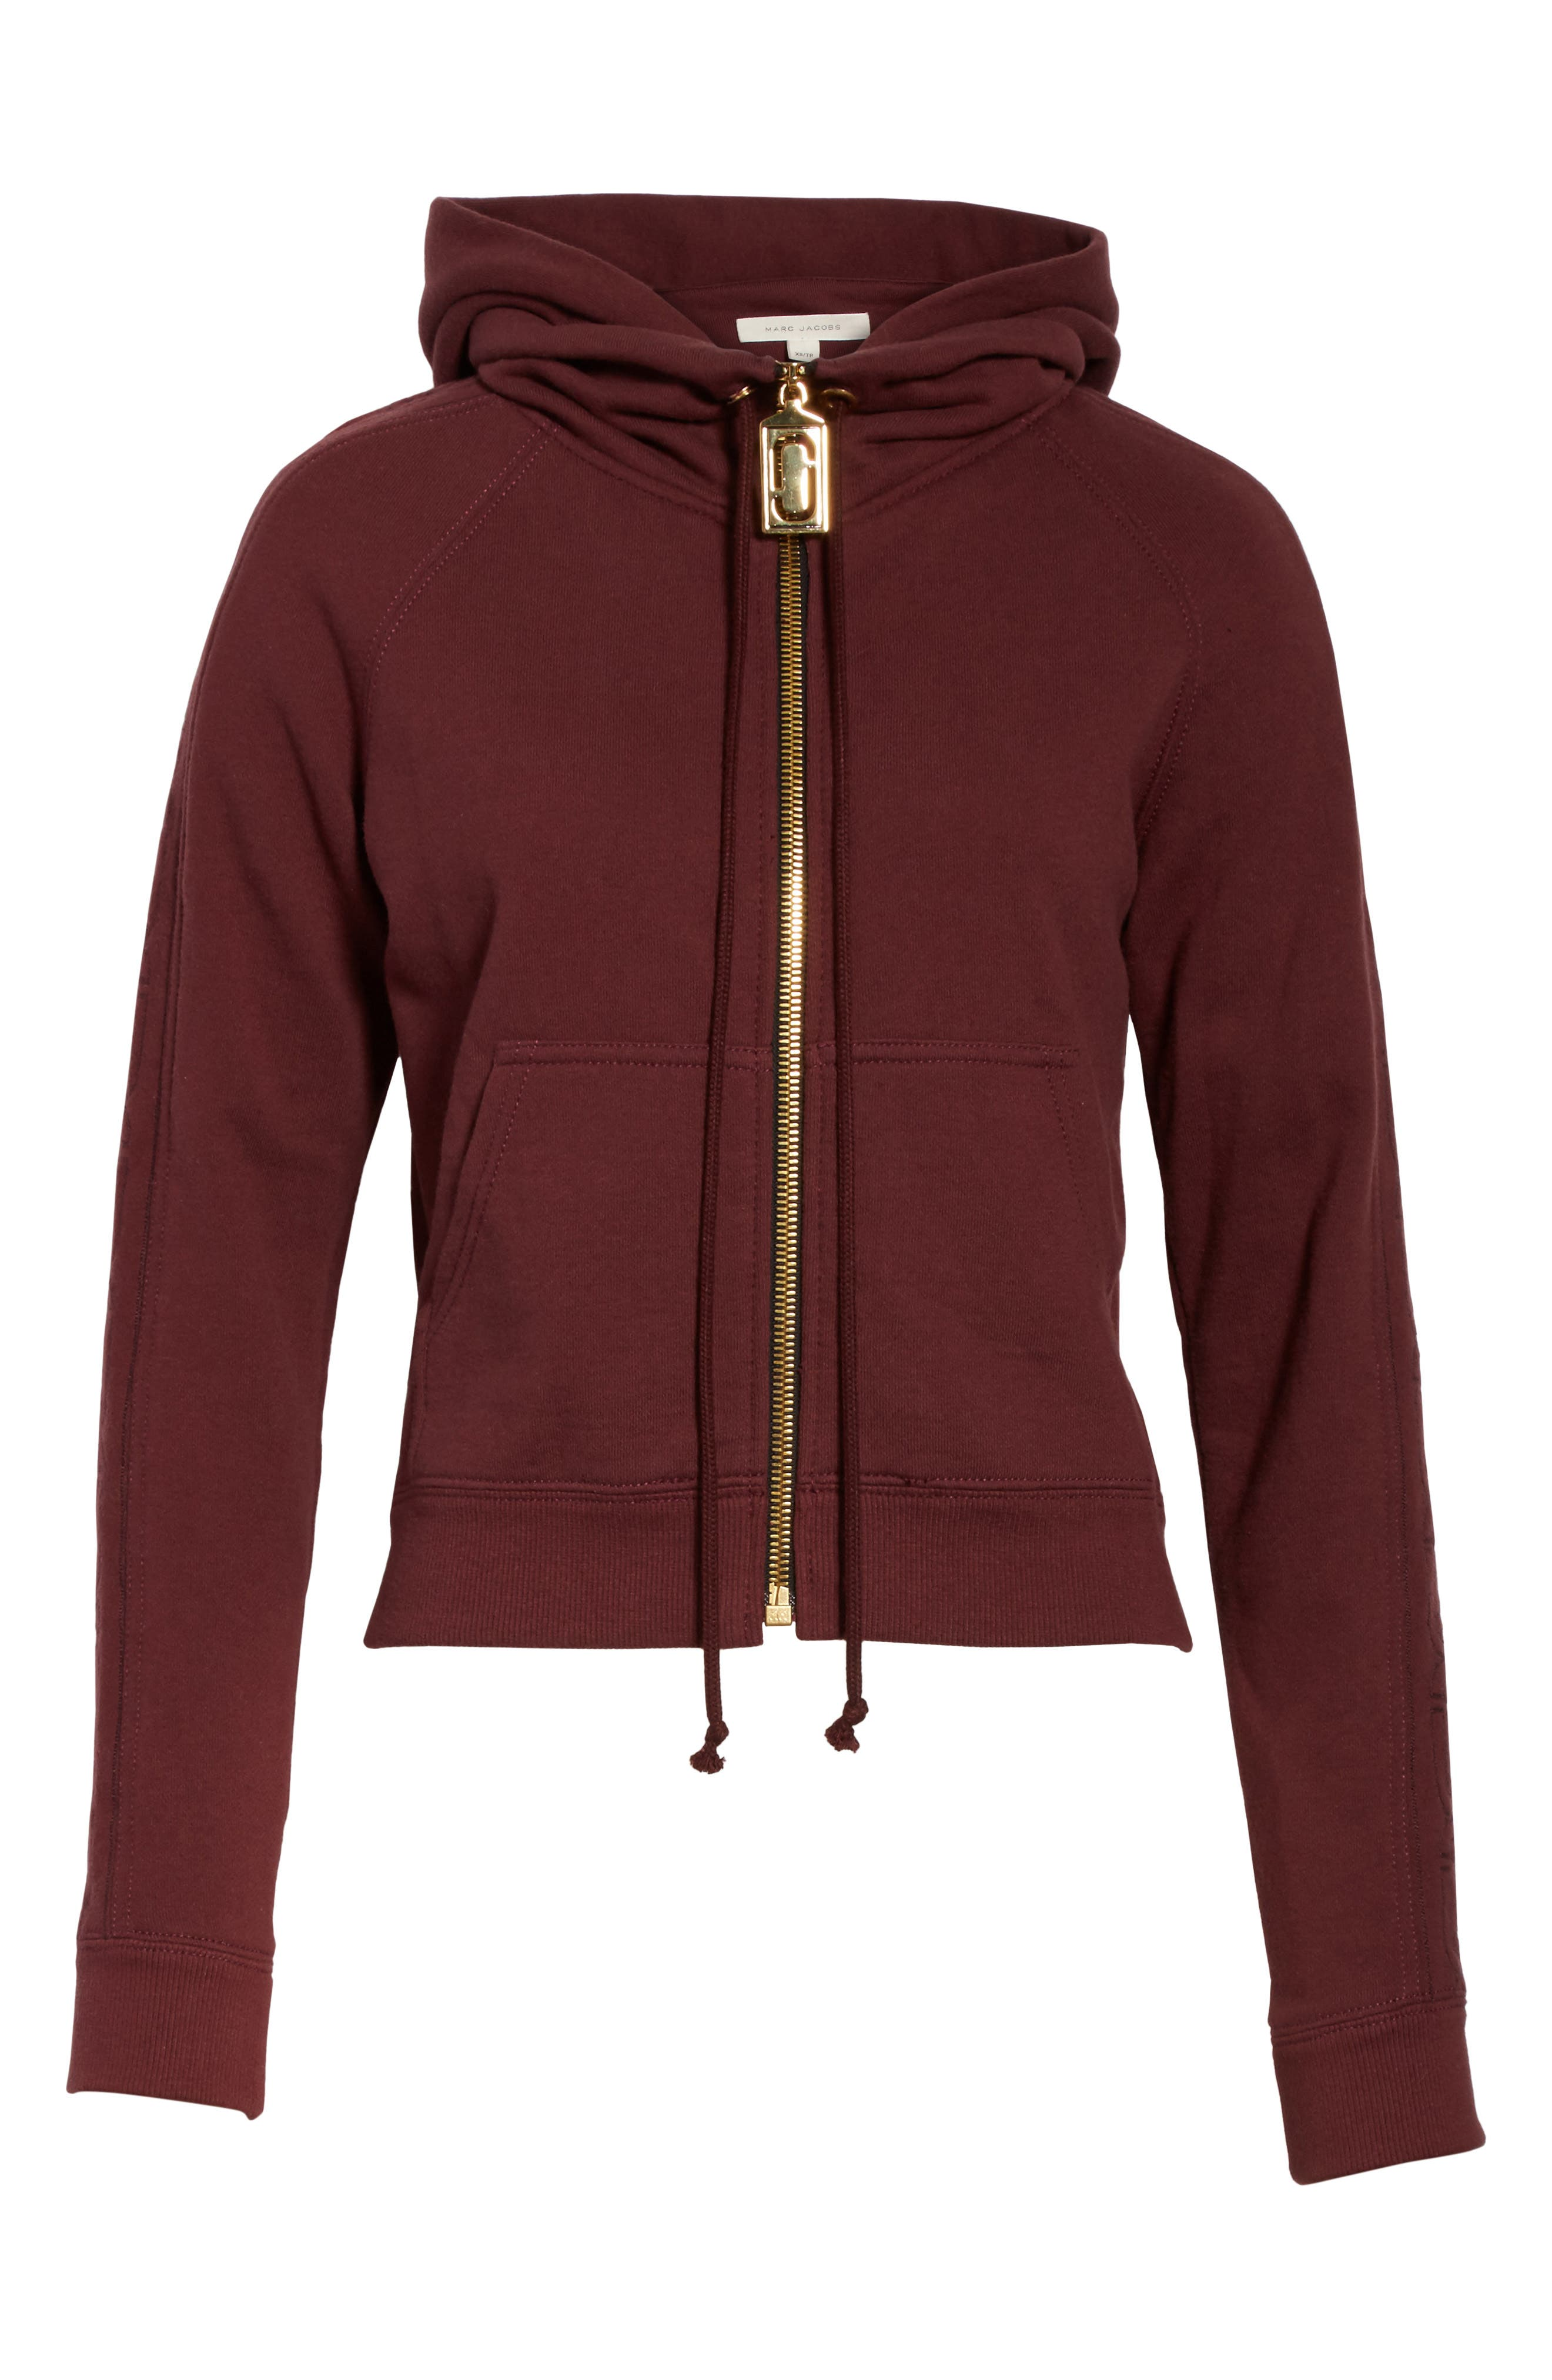 Embroidered Sleeve Hoodie,                             Alternate thumbnail 6, color,                             930